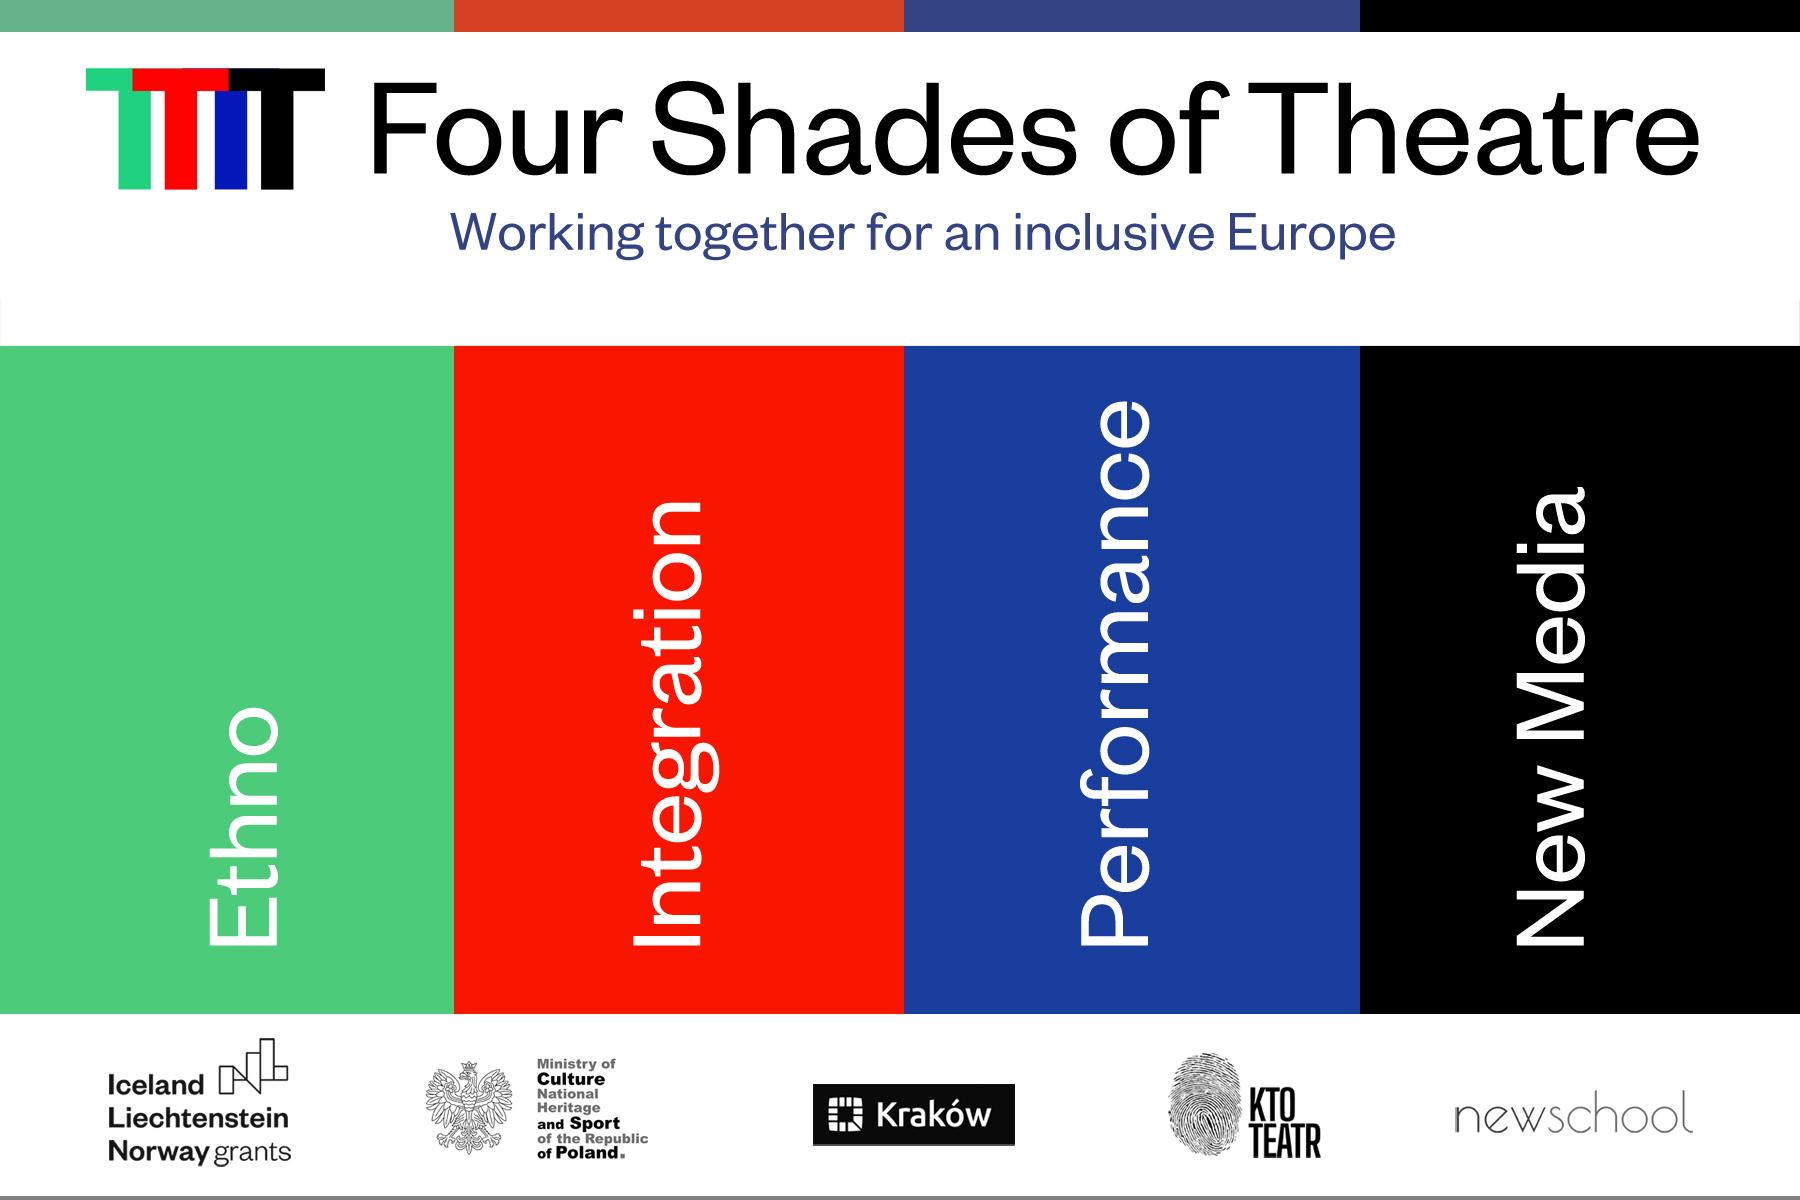 Four Shades of Theatre, design by Witold Siemaszkiewicz